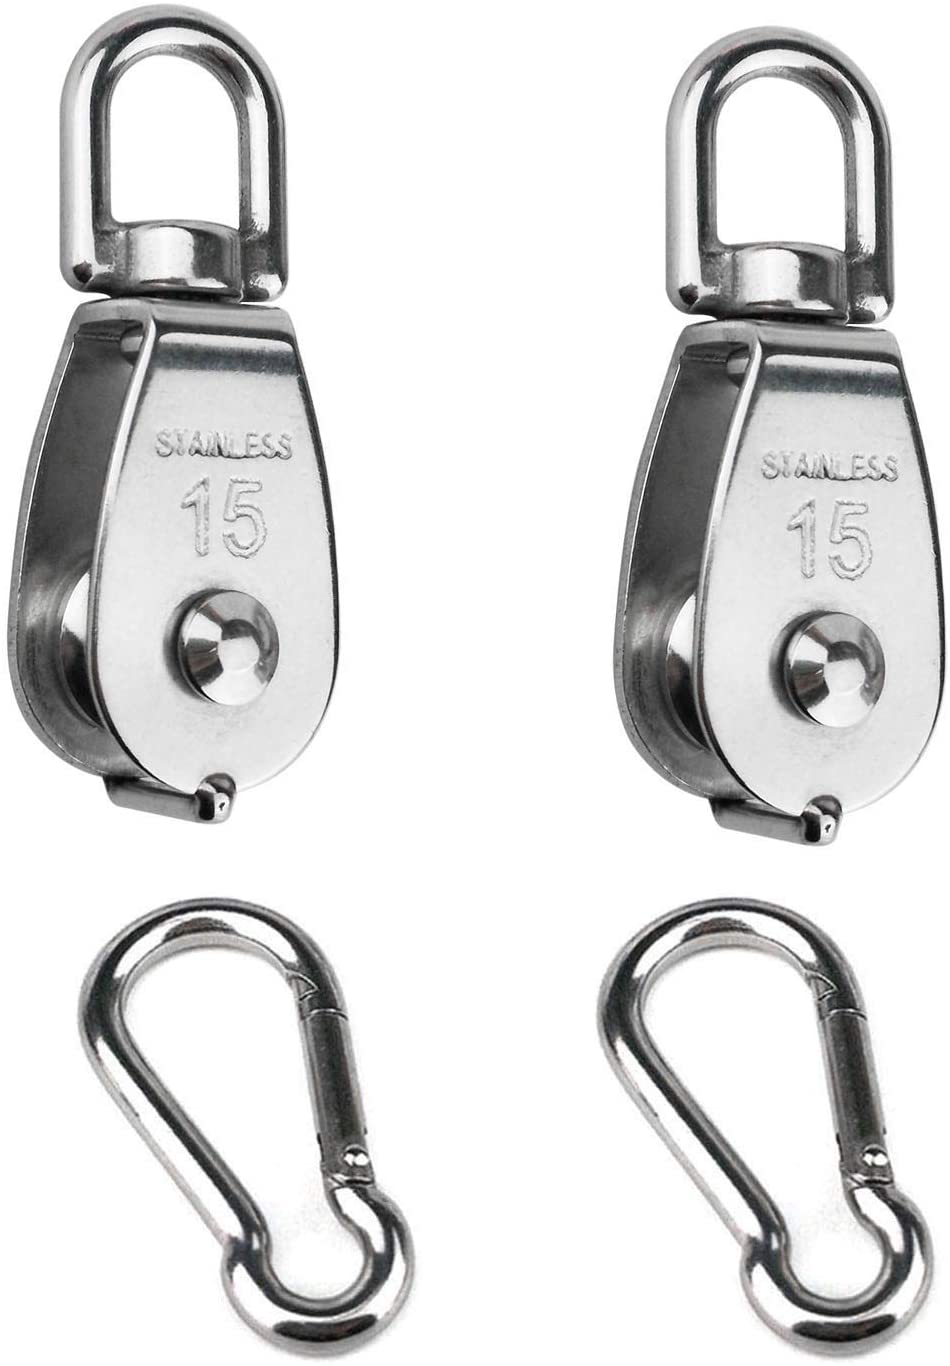 2PCS 304 Stainless Steel Single Pulley Block M15, Wire Rope Crane Pulley Block Hanging Wire Towing Wheel with 2PCS Spring Snap Hook